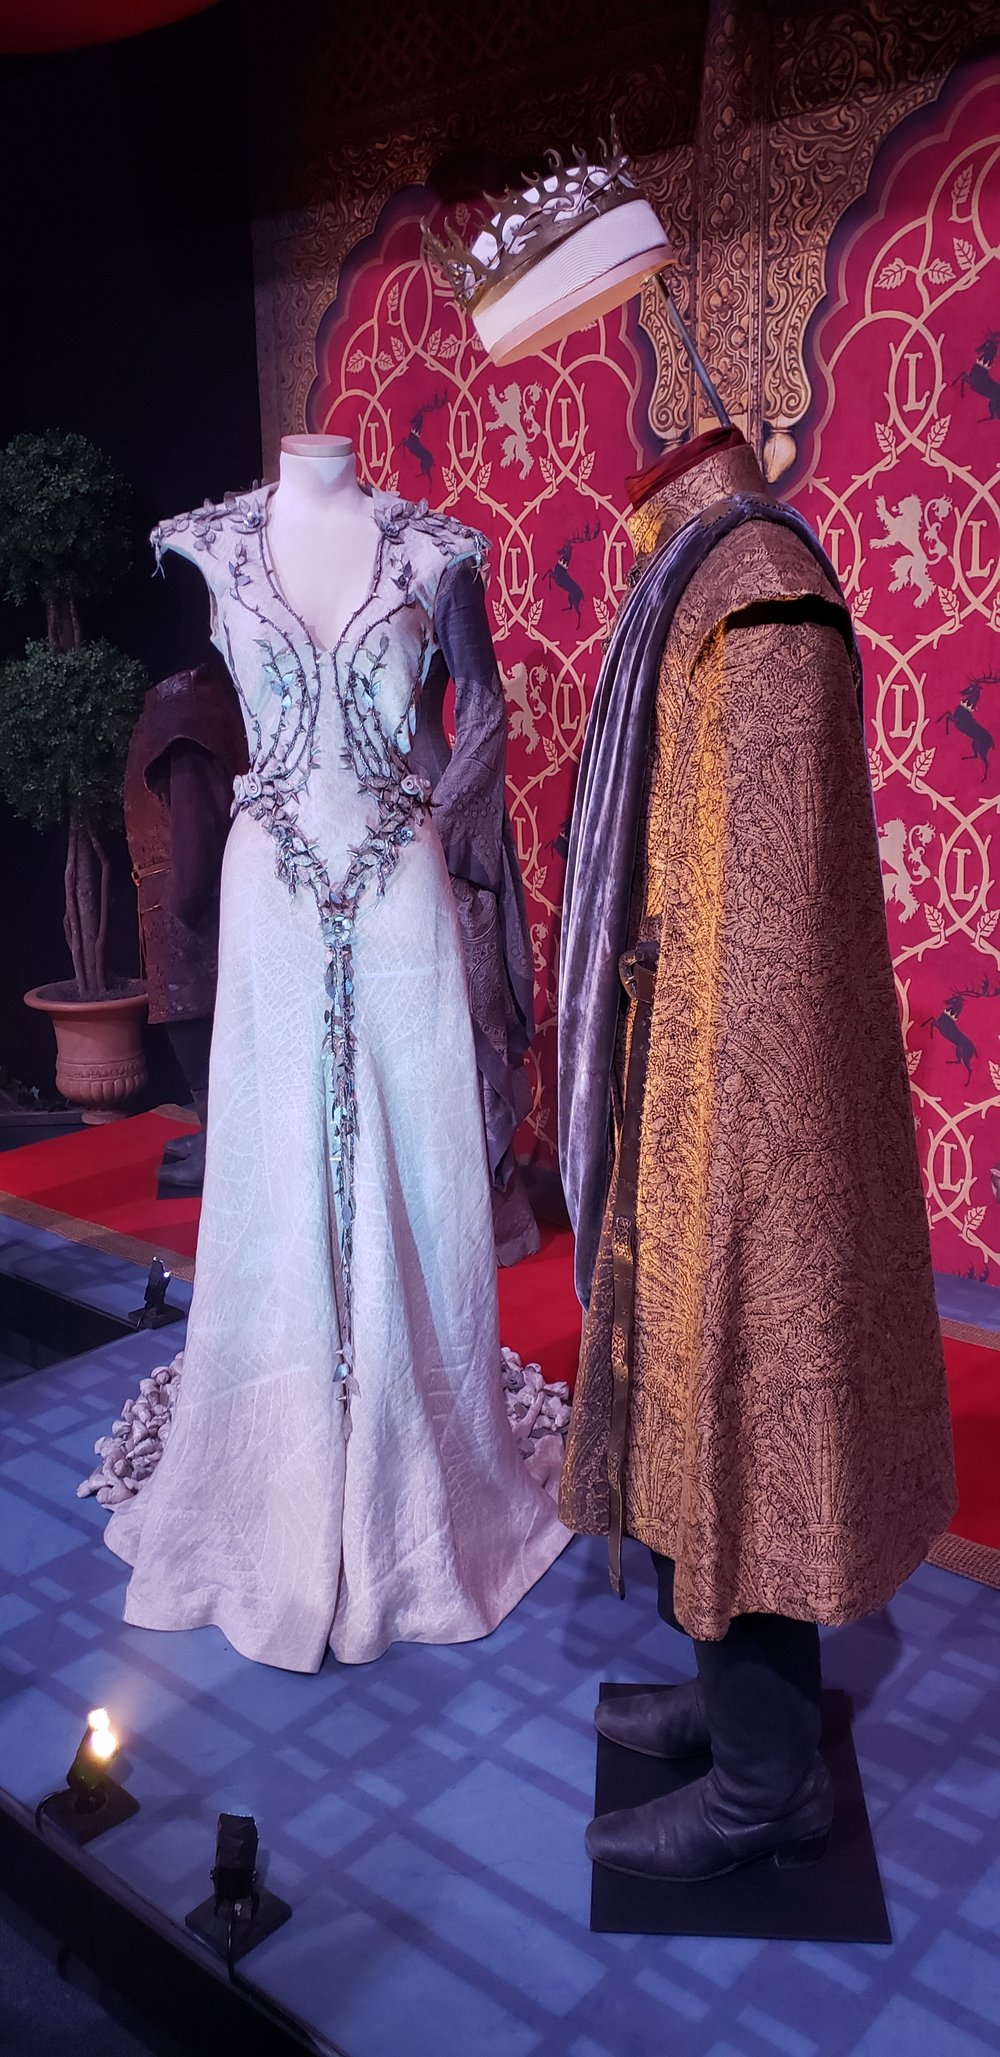 Margaery Tyrell and Joffrey Baratheon's Wedding Outfits